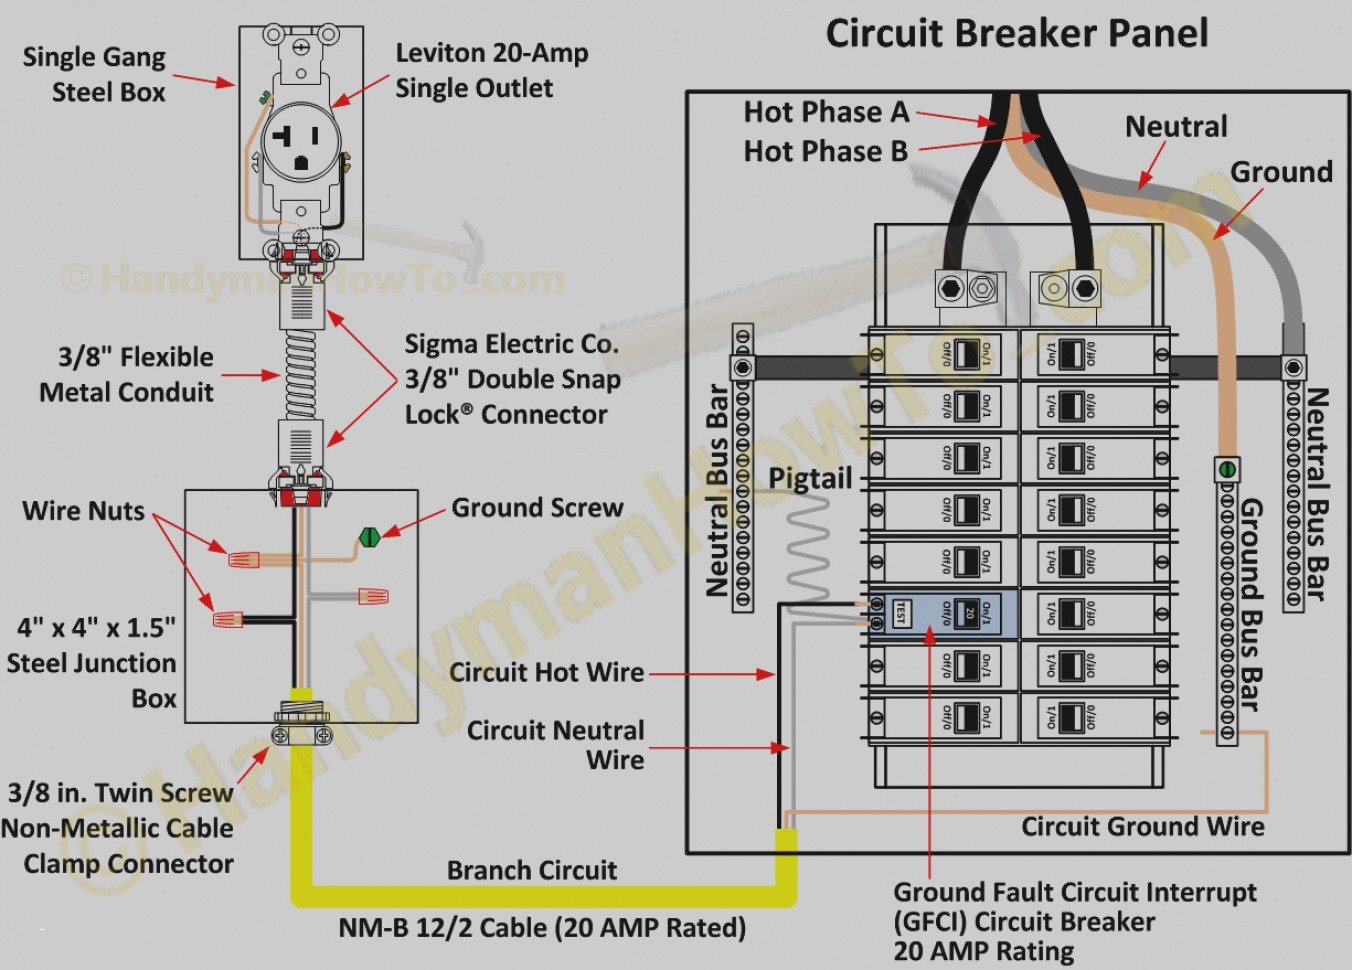 Funky 110 Block Wiring Diagram Full Image - Electrical and Wiring ...